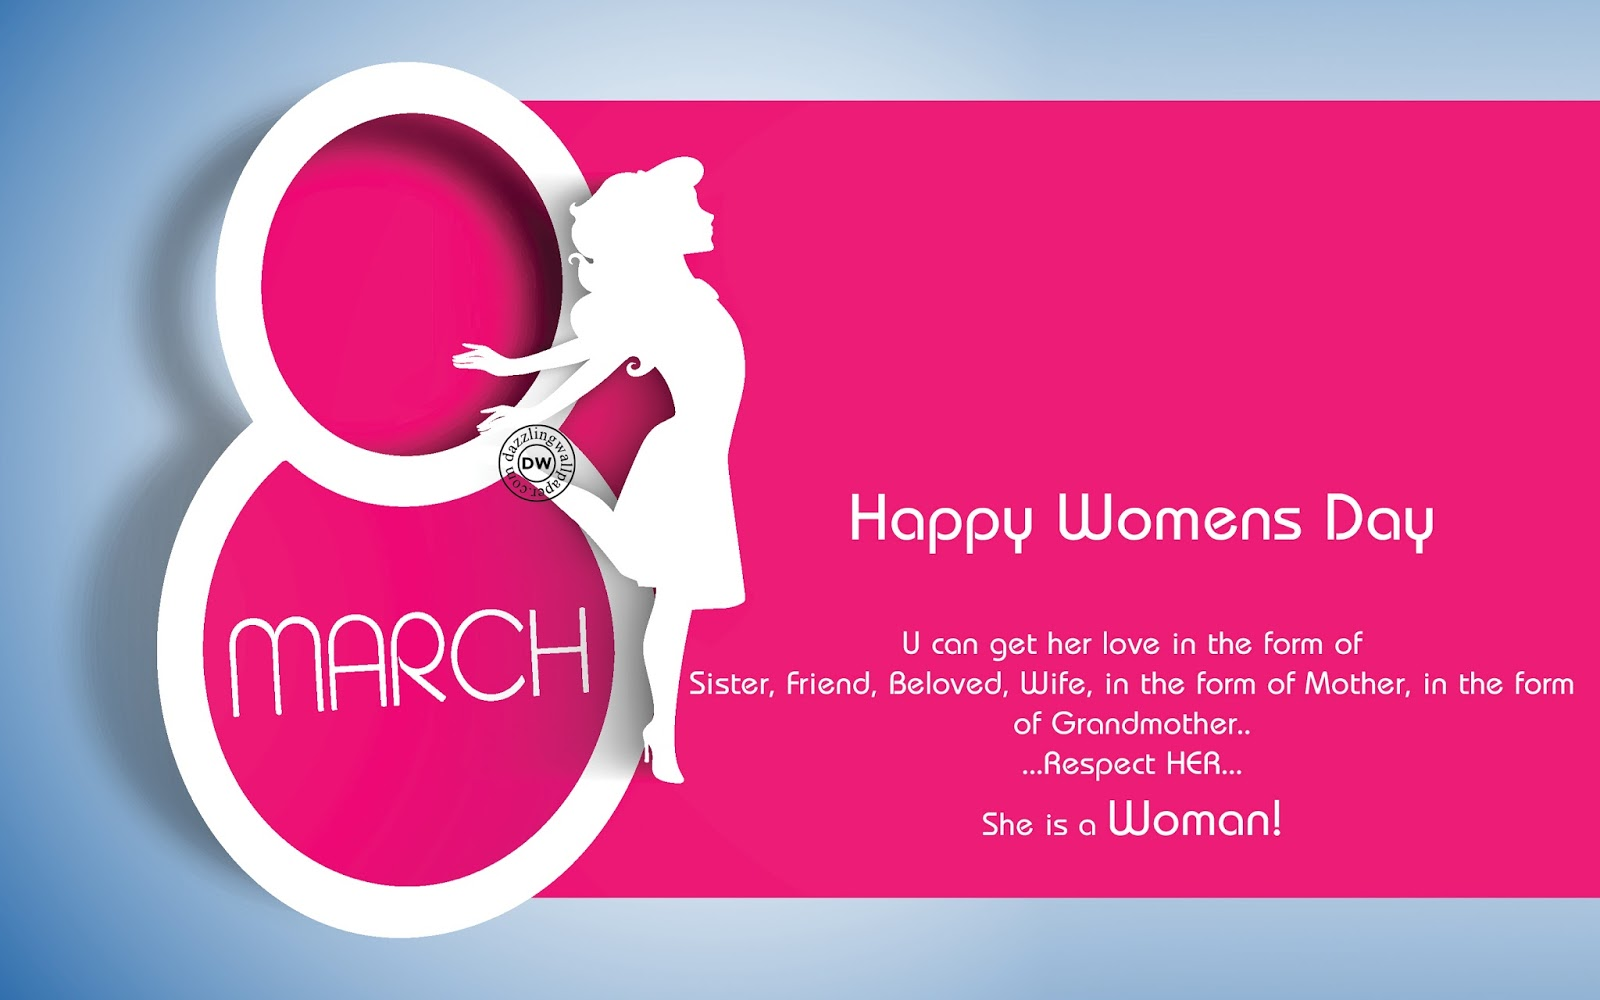 Happy Women's Day Wishes in English